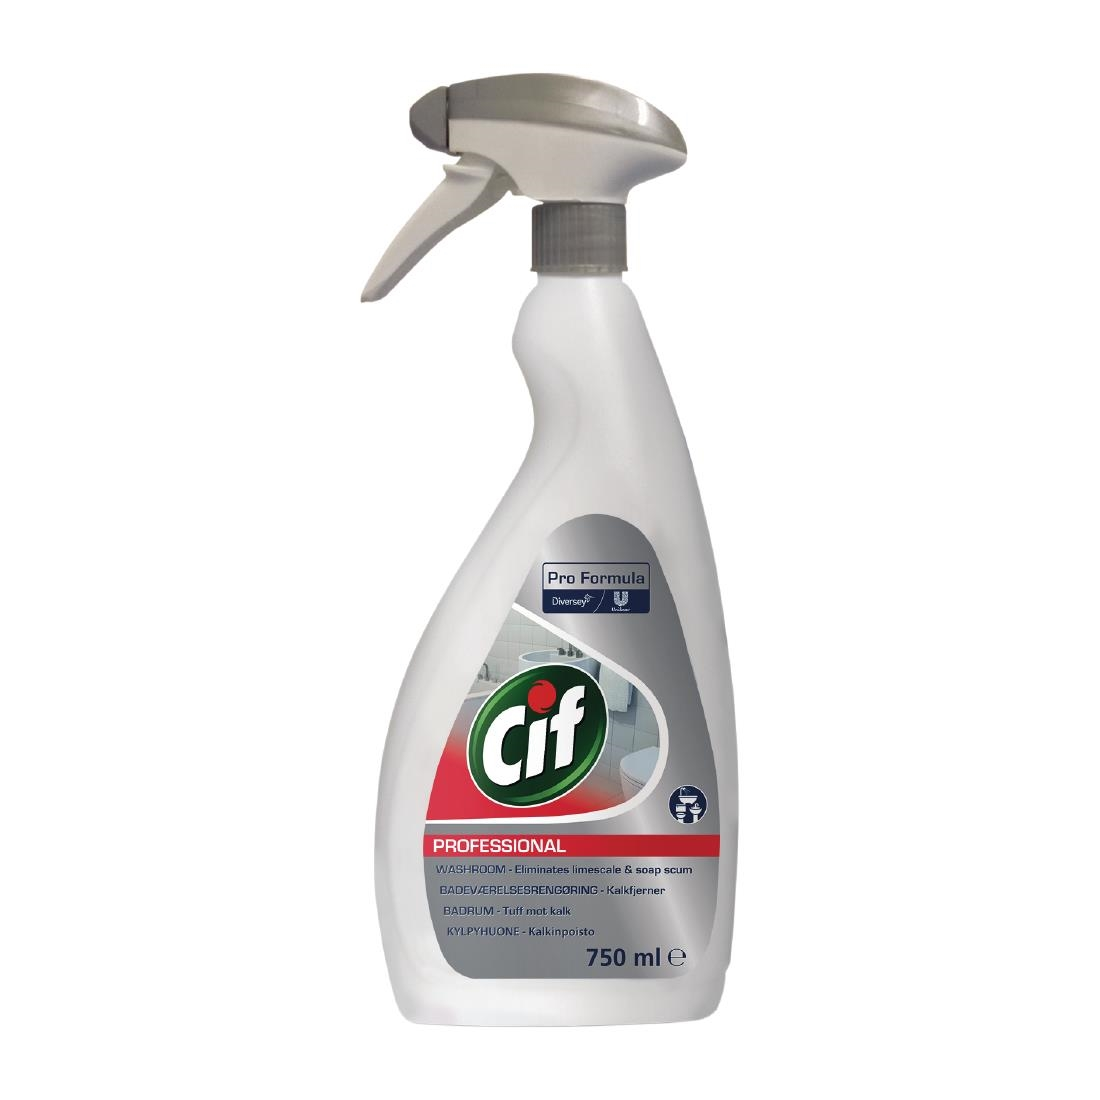 Image of Cif Pro Formula 2-in-1 Washroom Cleaner and Descaler Ready To Use 750ml (6 Pack) Pack of 6